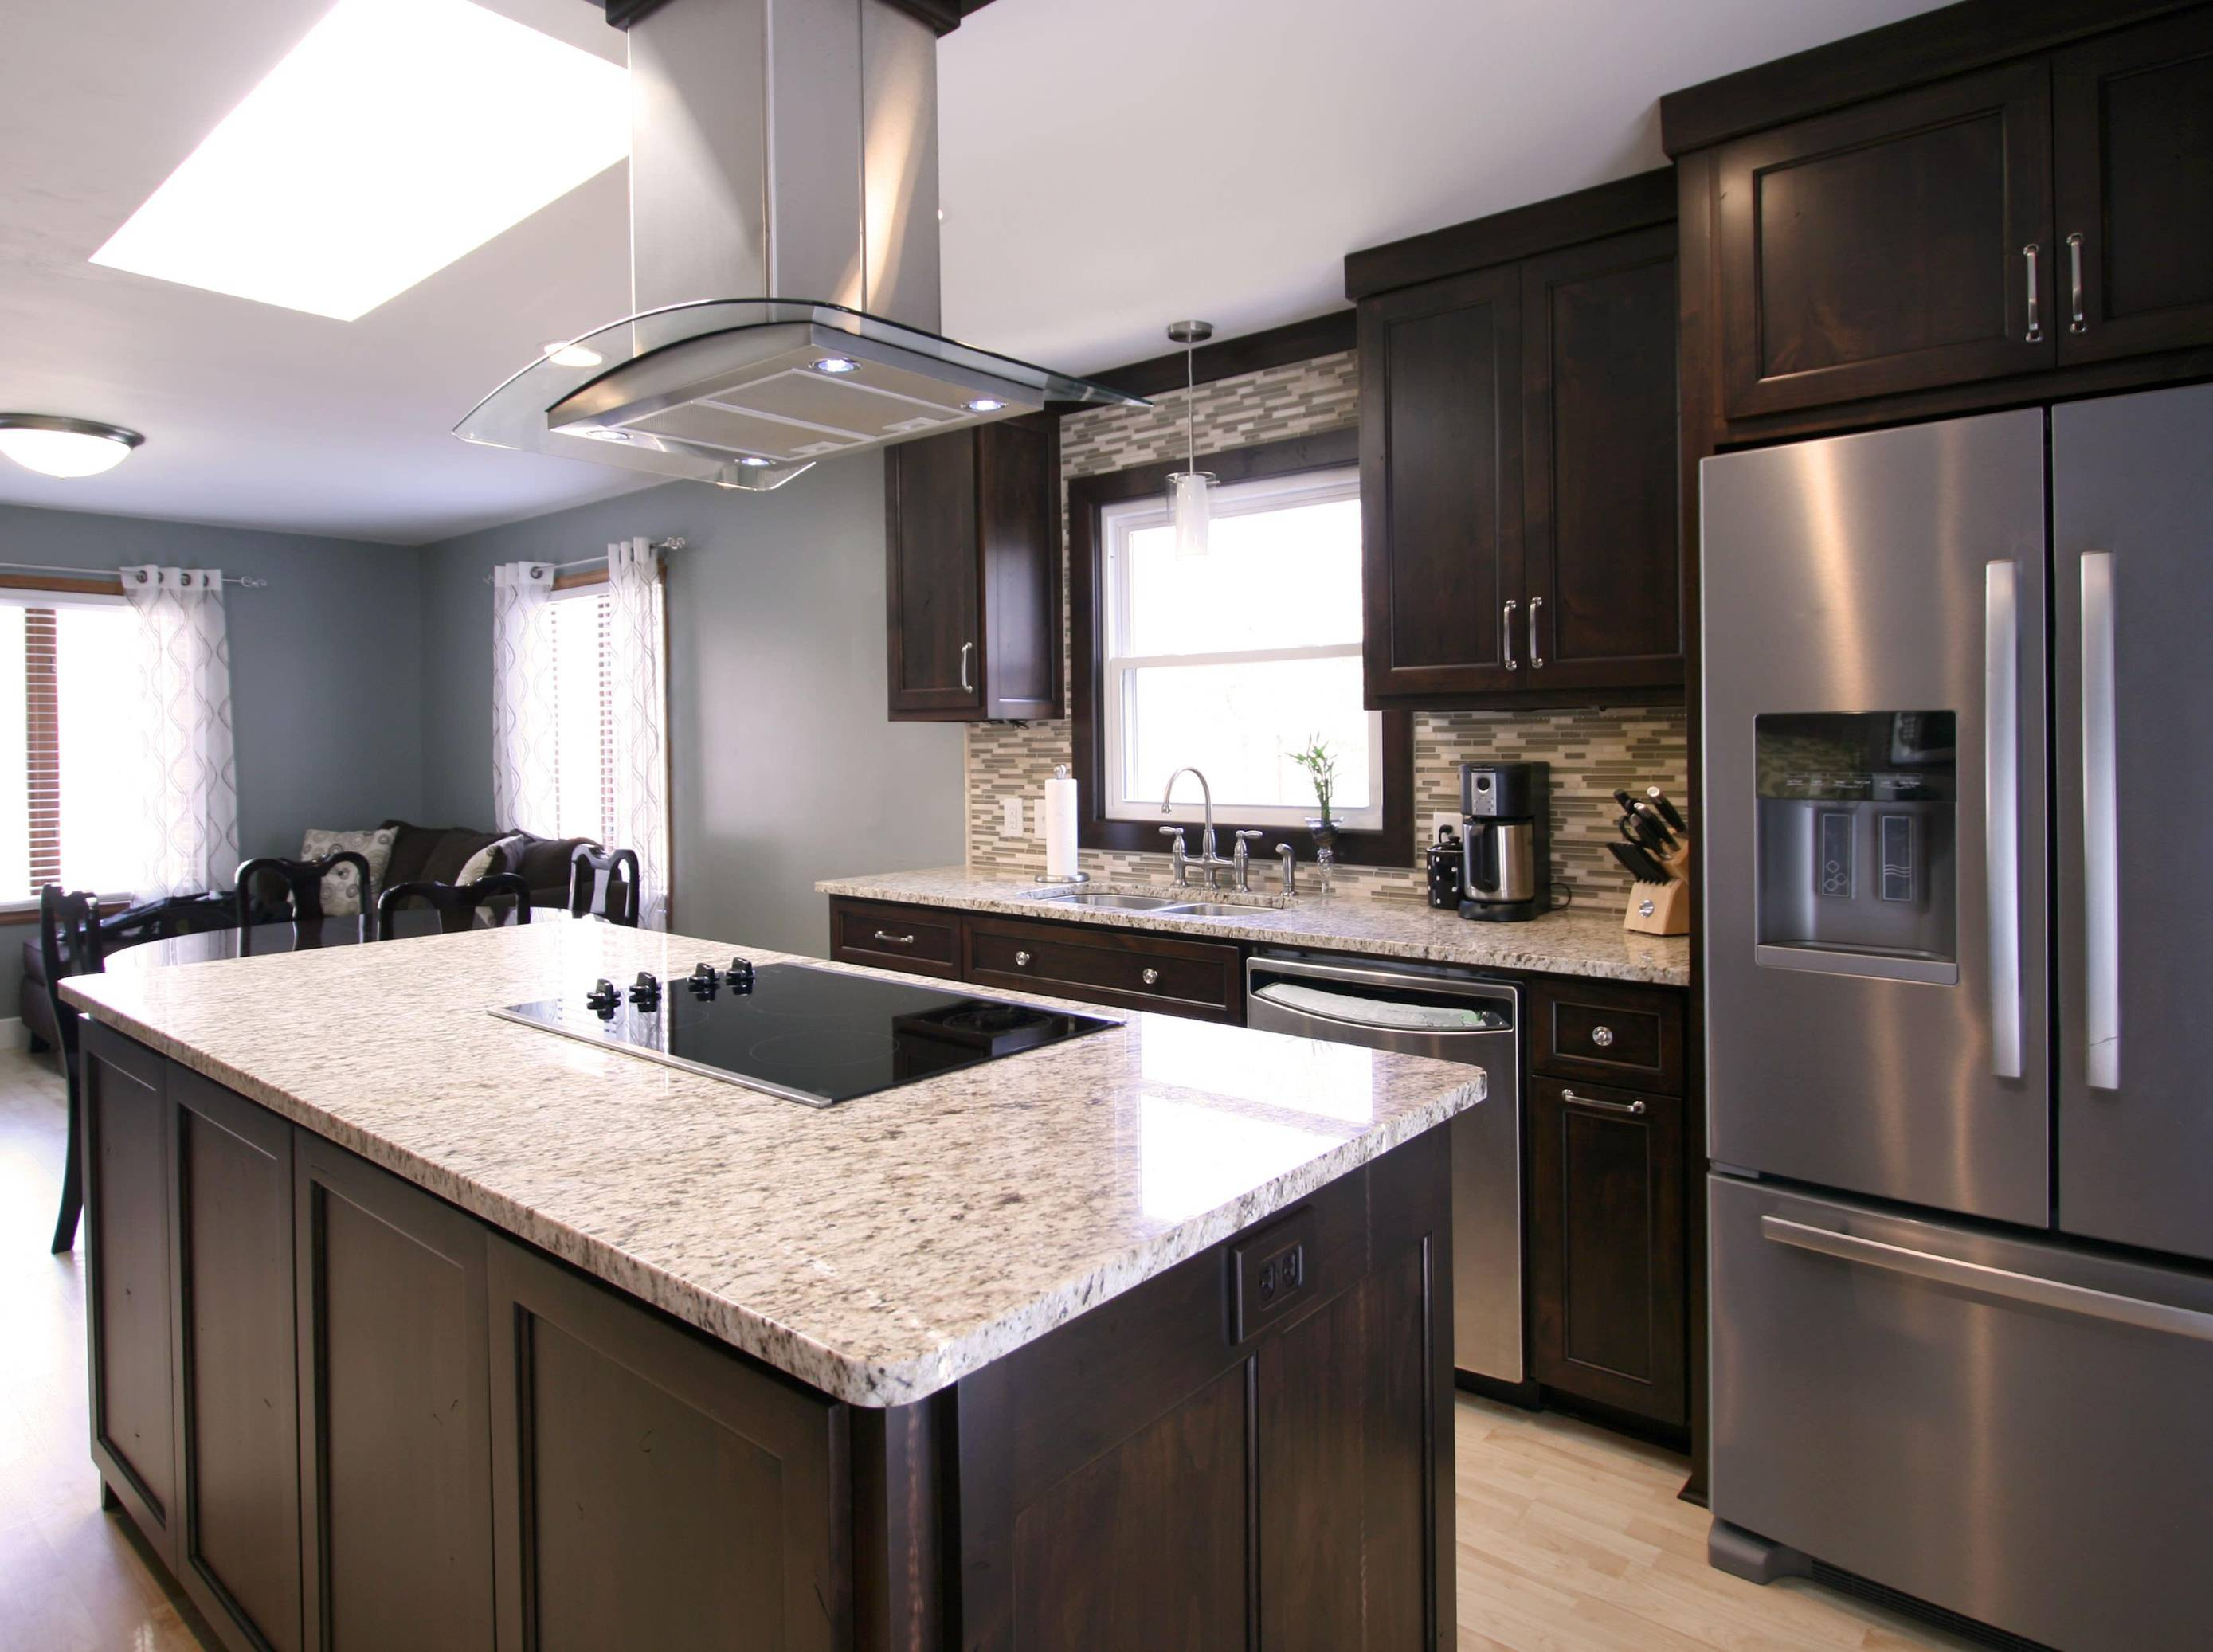 Gray walls with brown kitchen